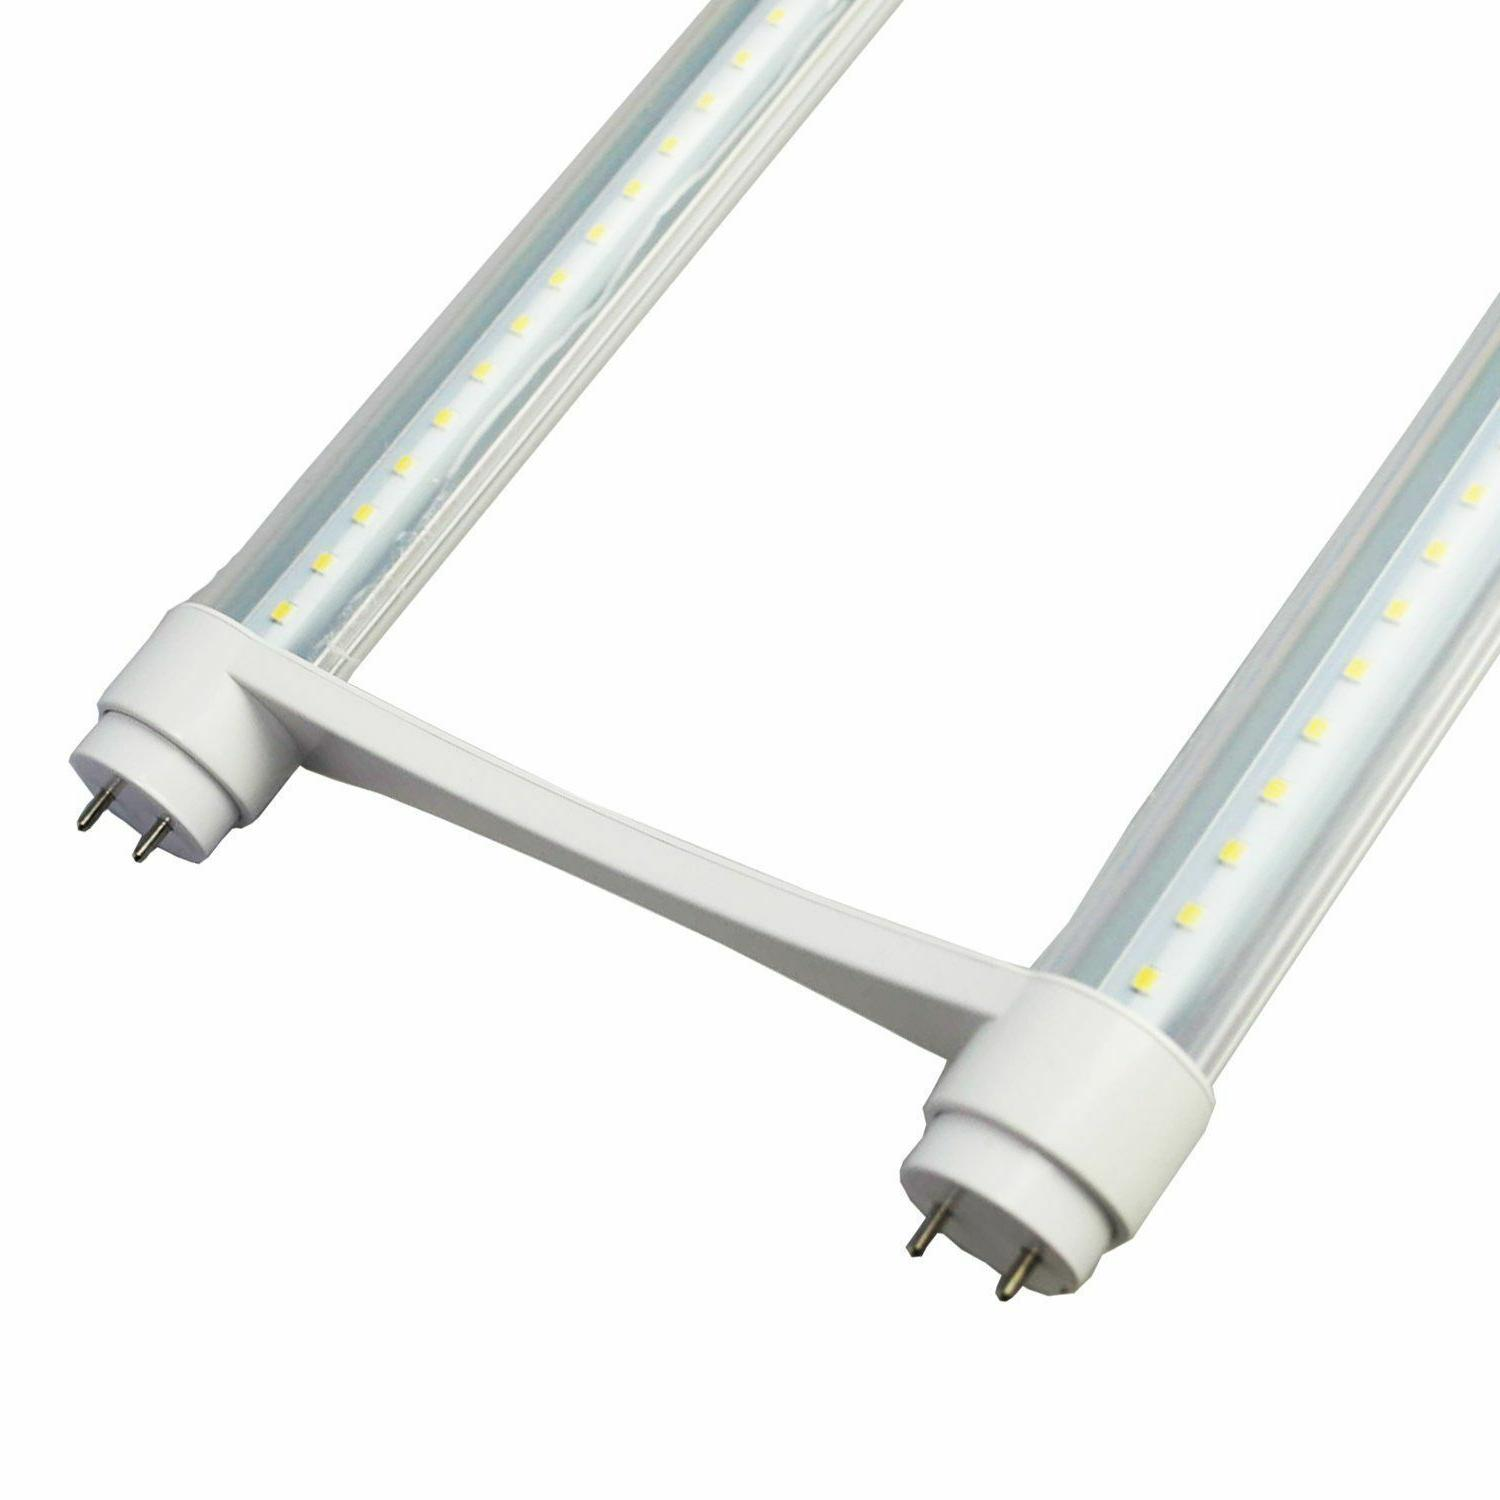 U- BEND G13 20W 5500K CLEAR Tube Light T8 T12 Replacement